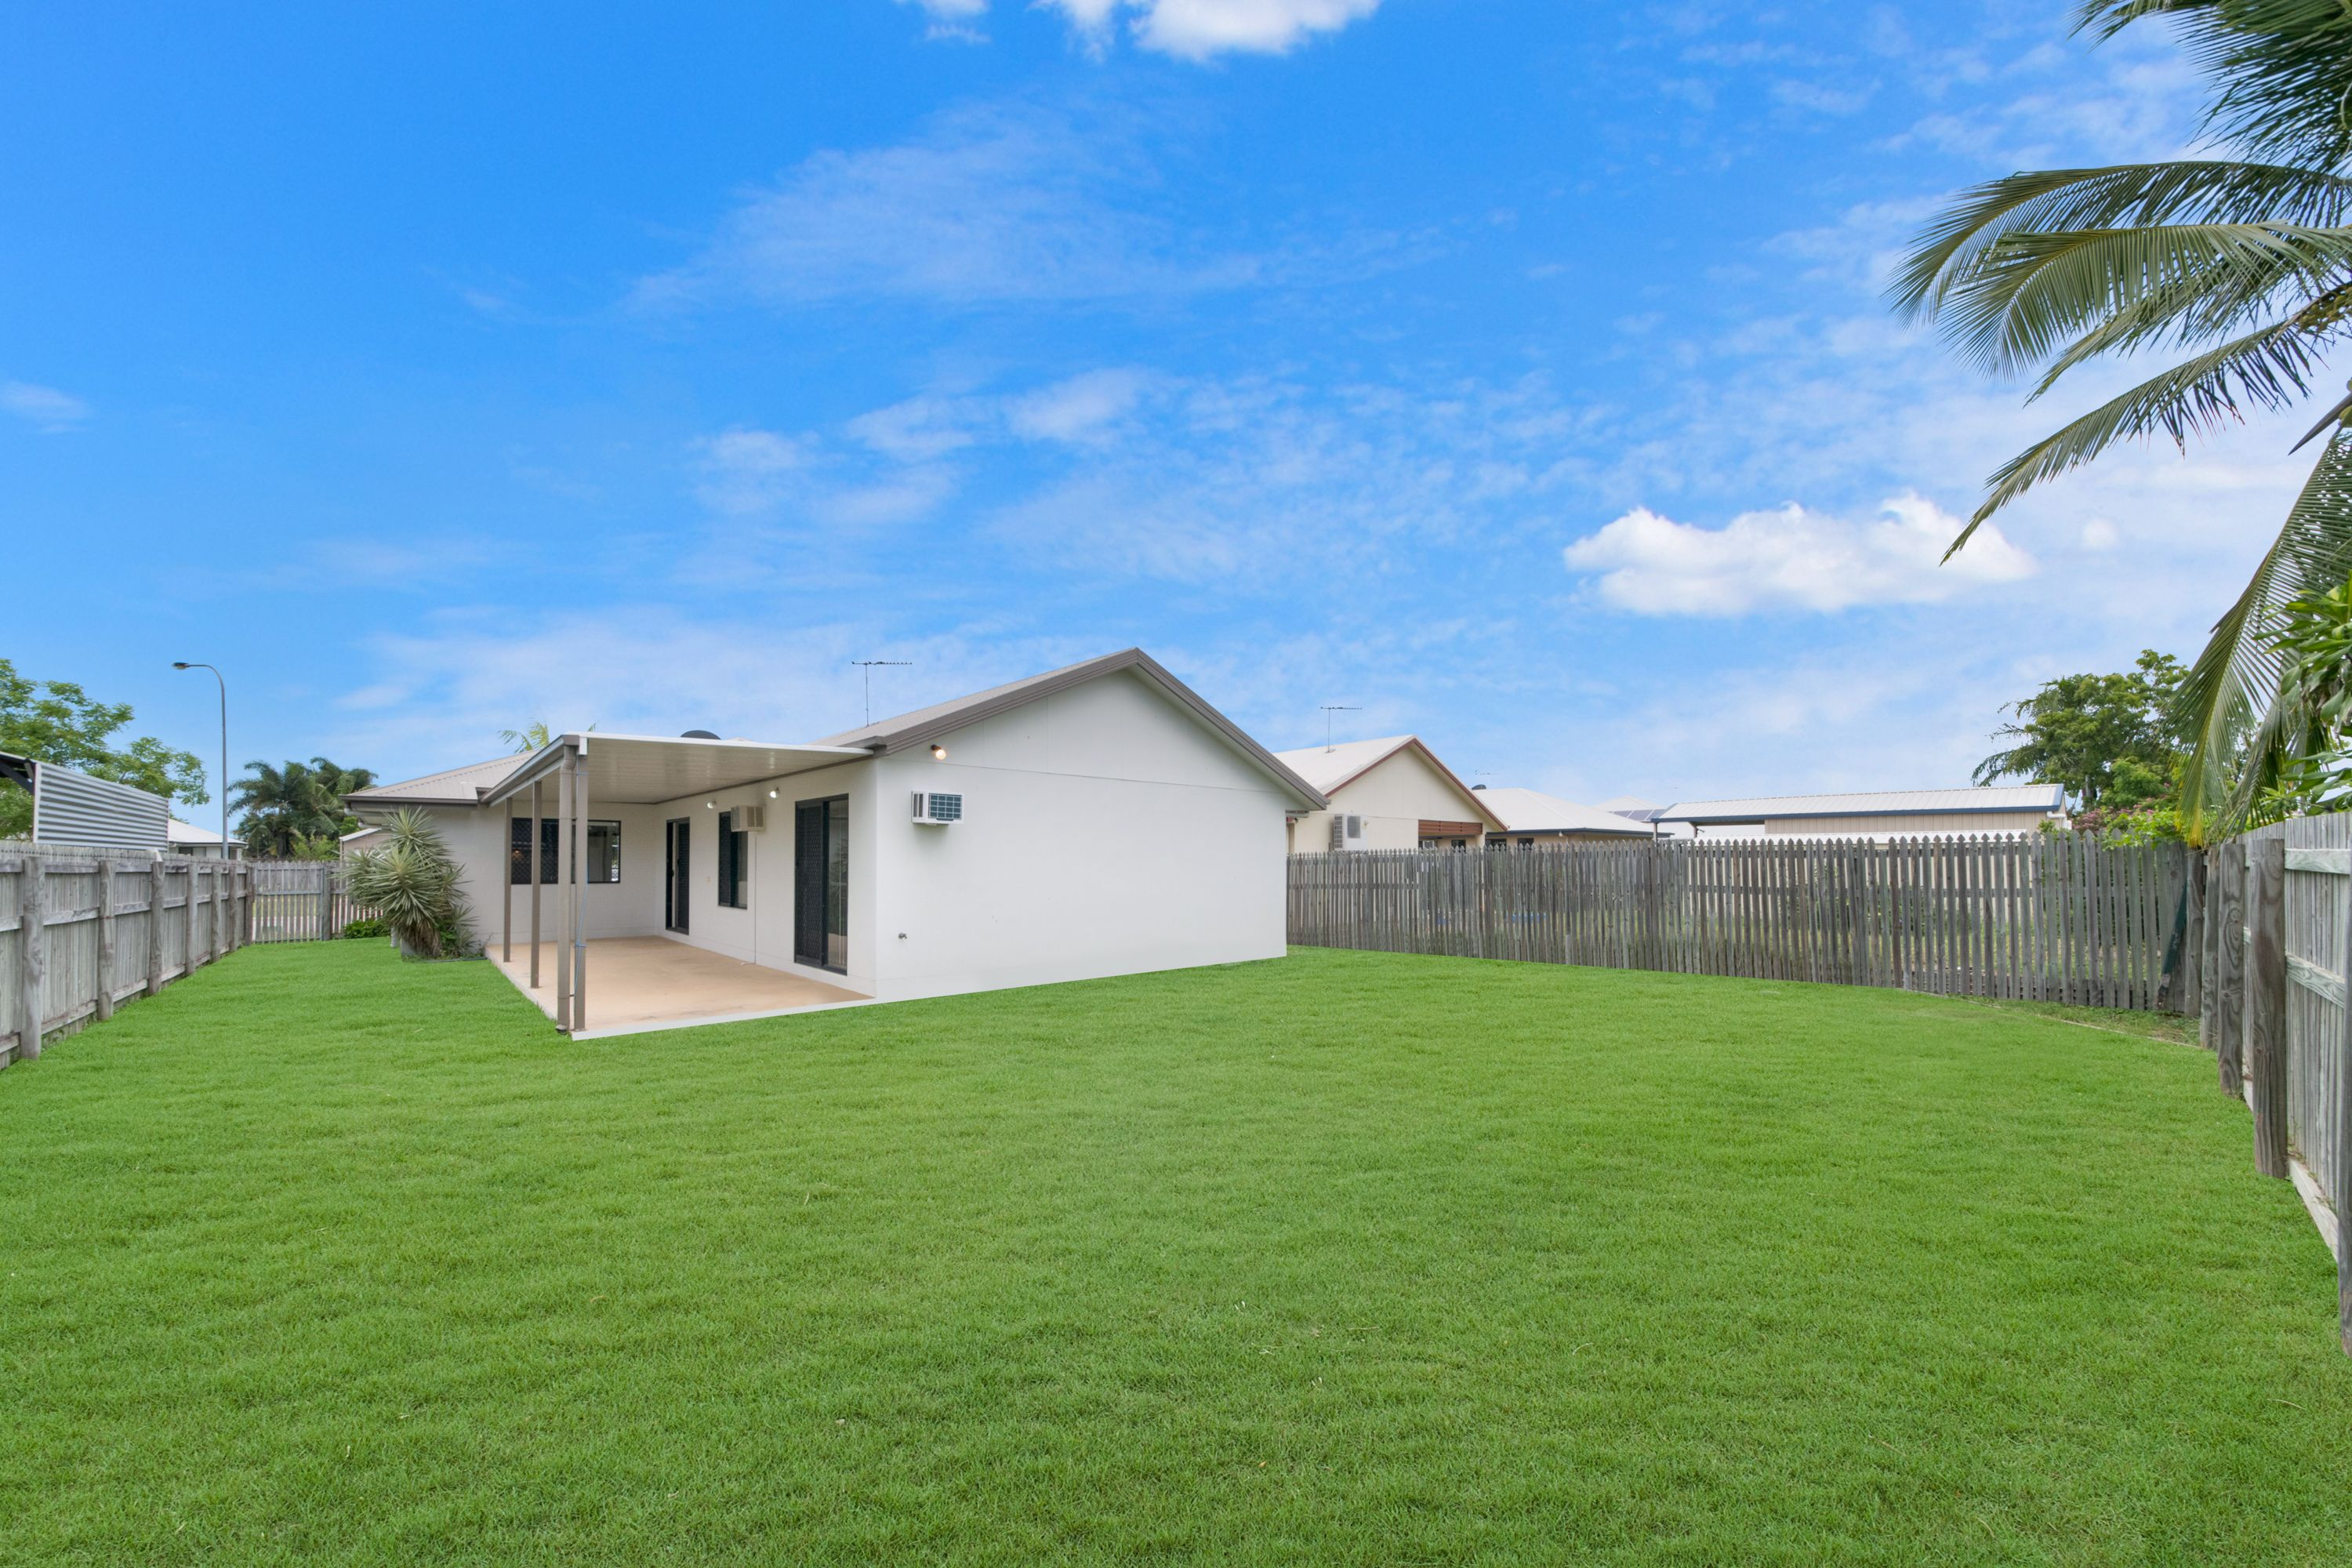 11 Eton Court, Burdell, QLD 4818